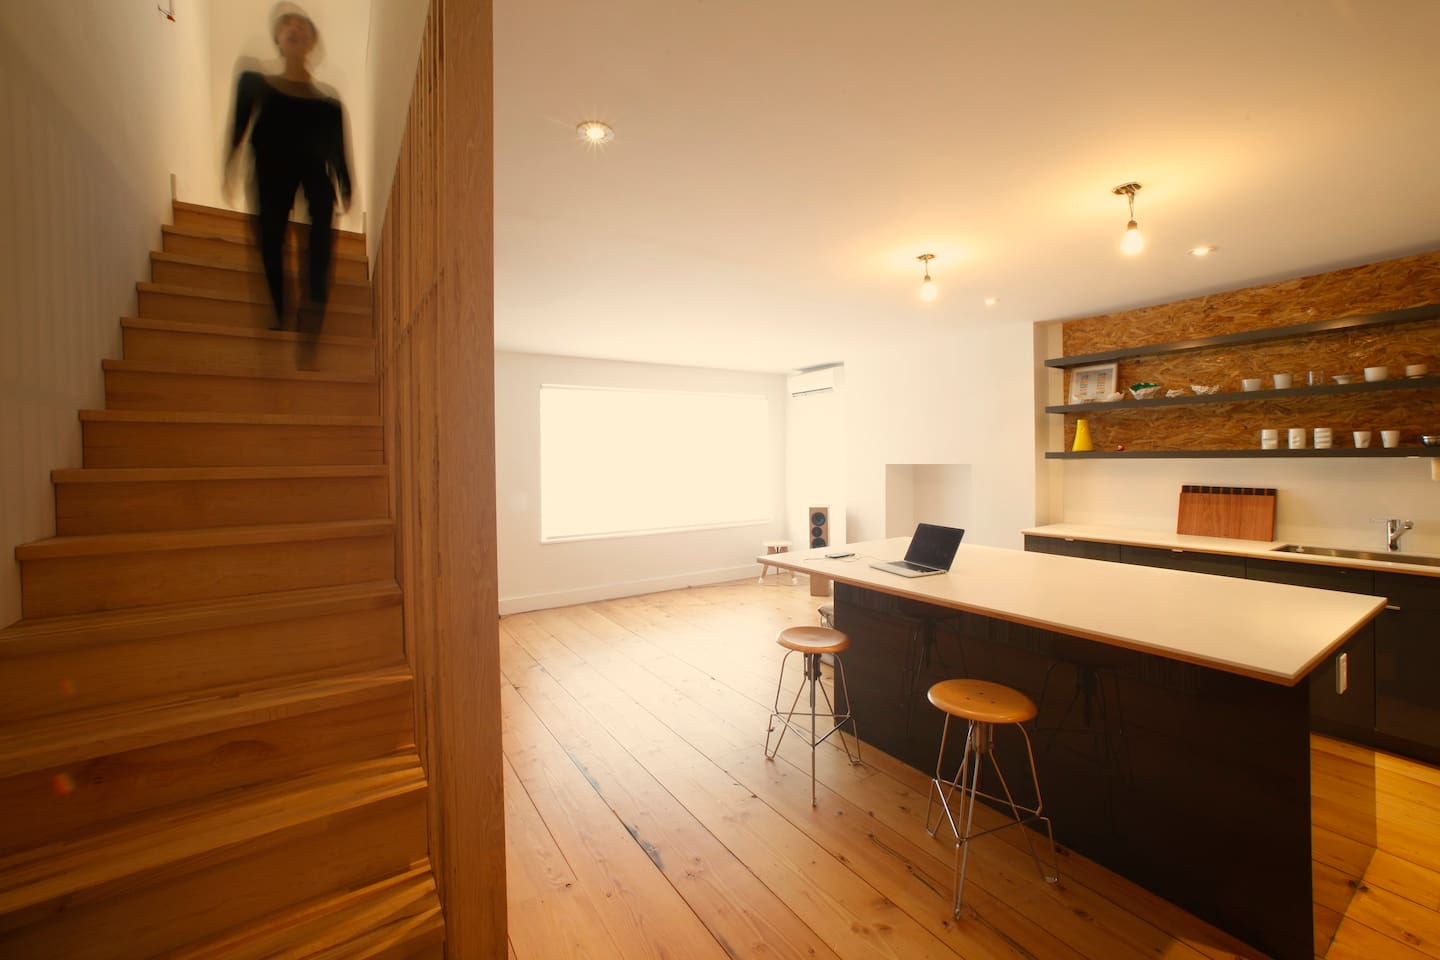 Open living and kitchen area. Stairs go up to bedrooms and large bathroom.